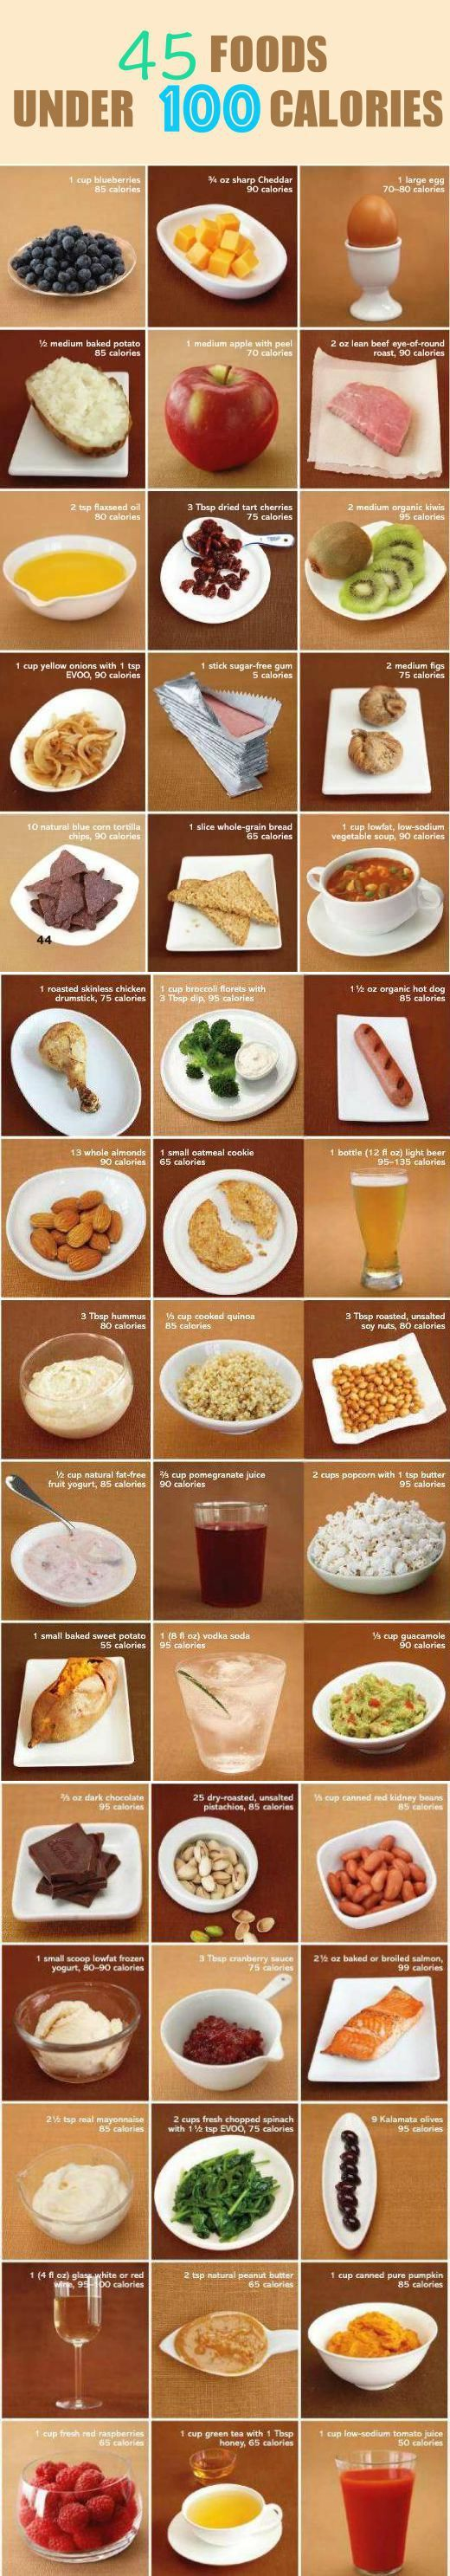 20 Extremely Useful Food Charts That Will Help You Eat Healthier ...